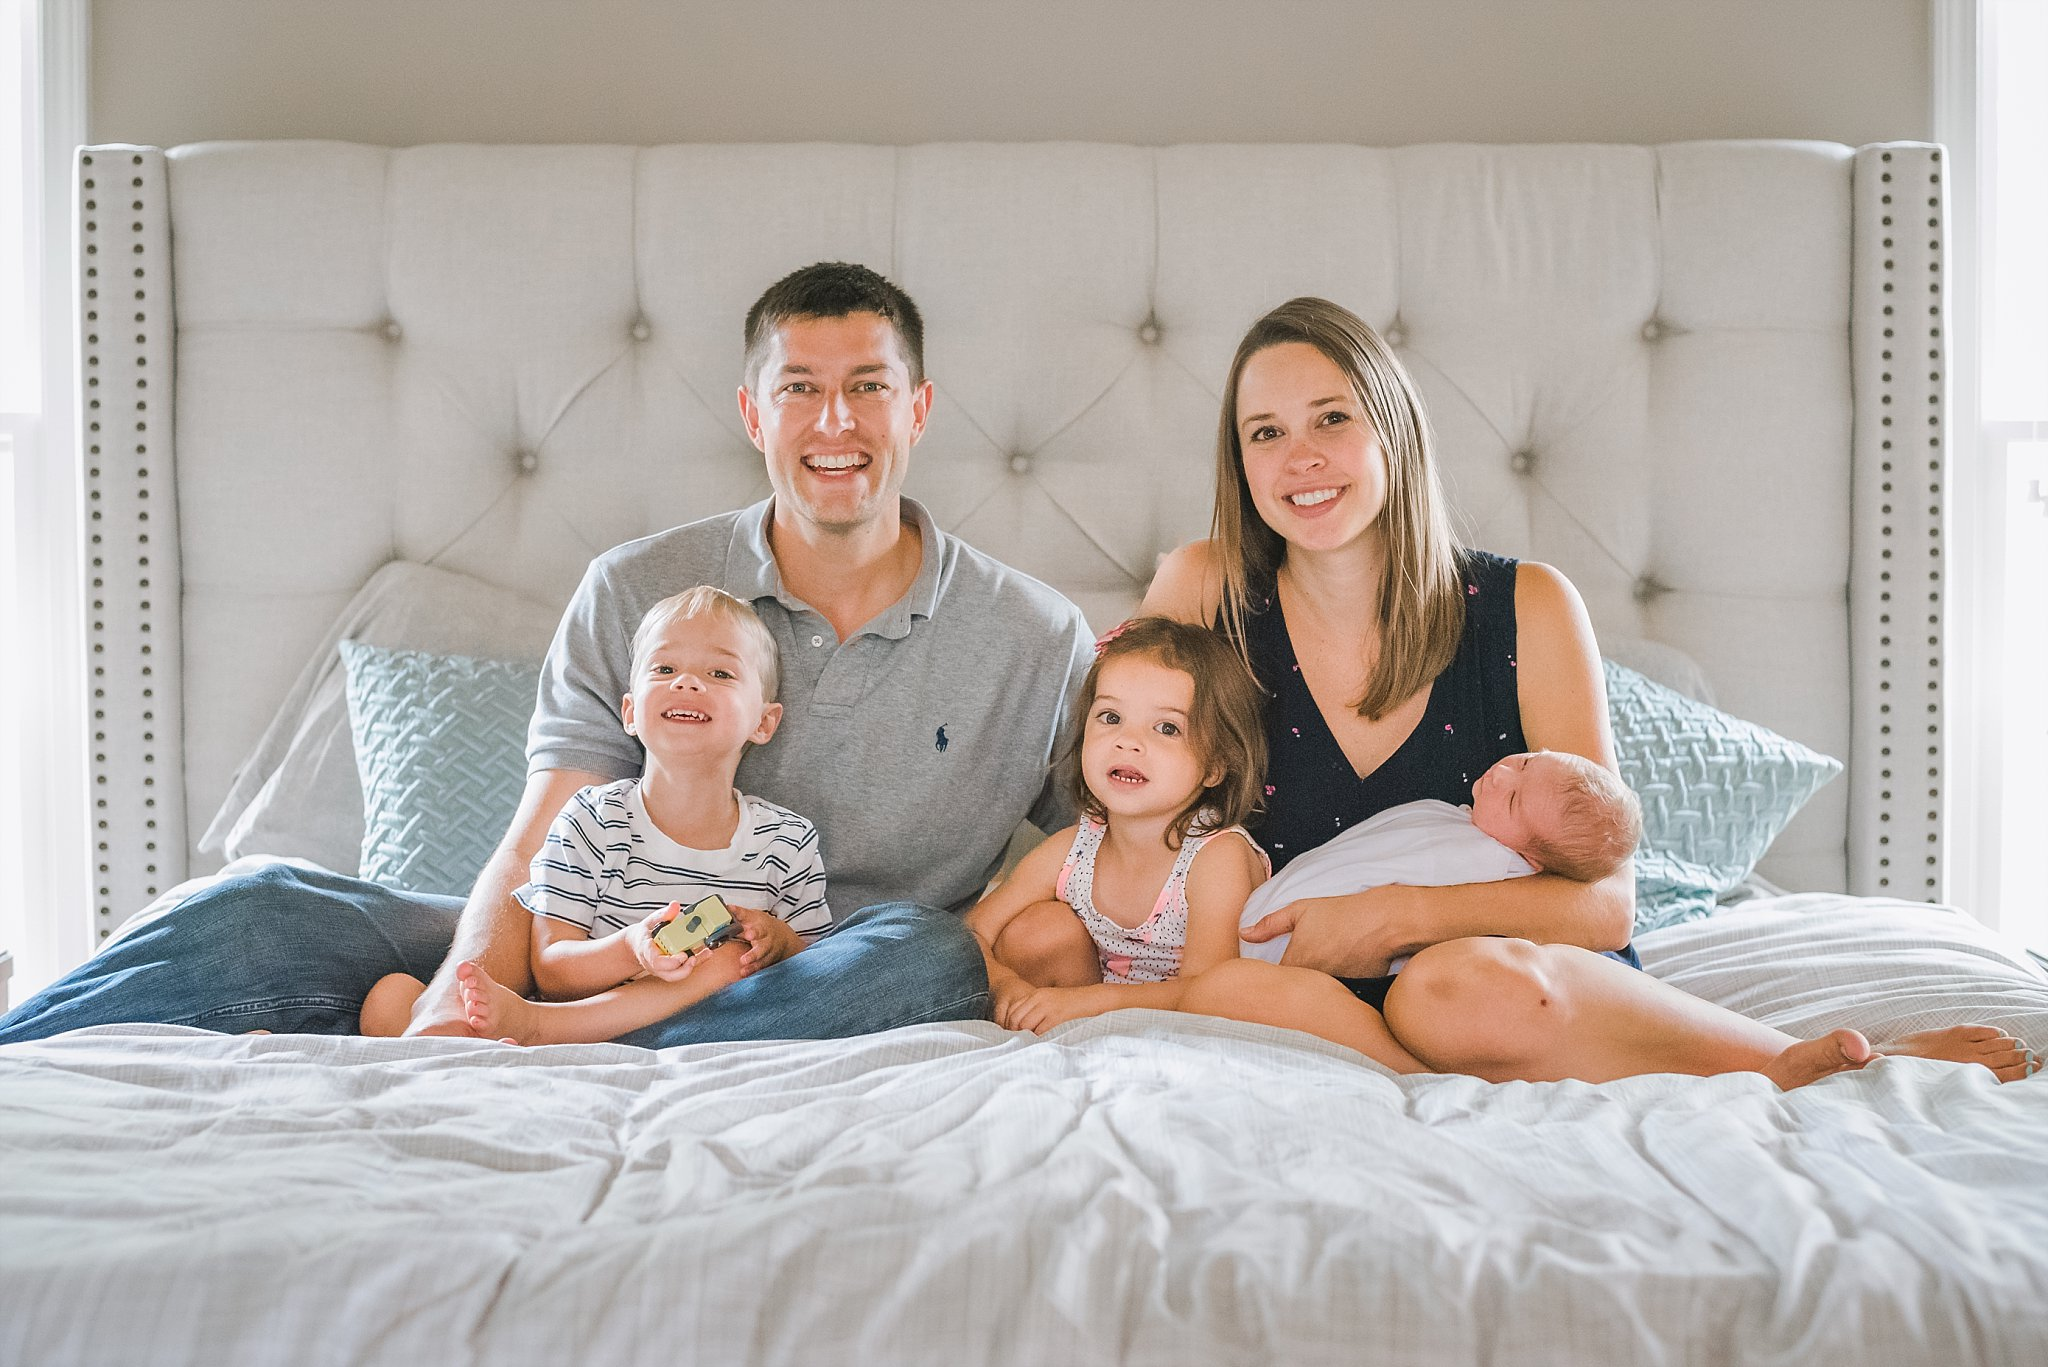 New family of five on master bed at lifestyle newborn session in Woodstock, GA